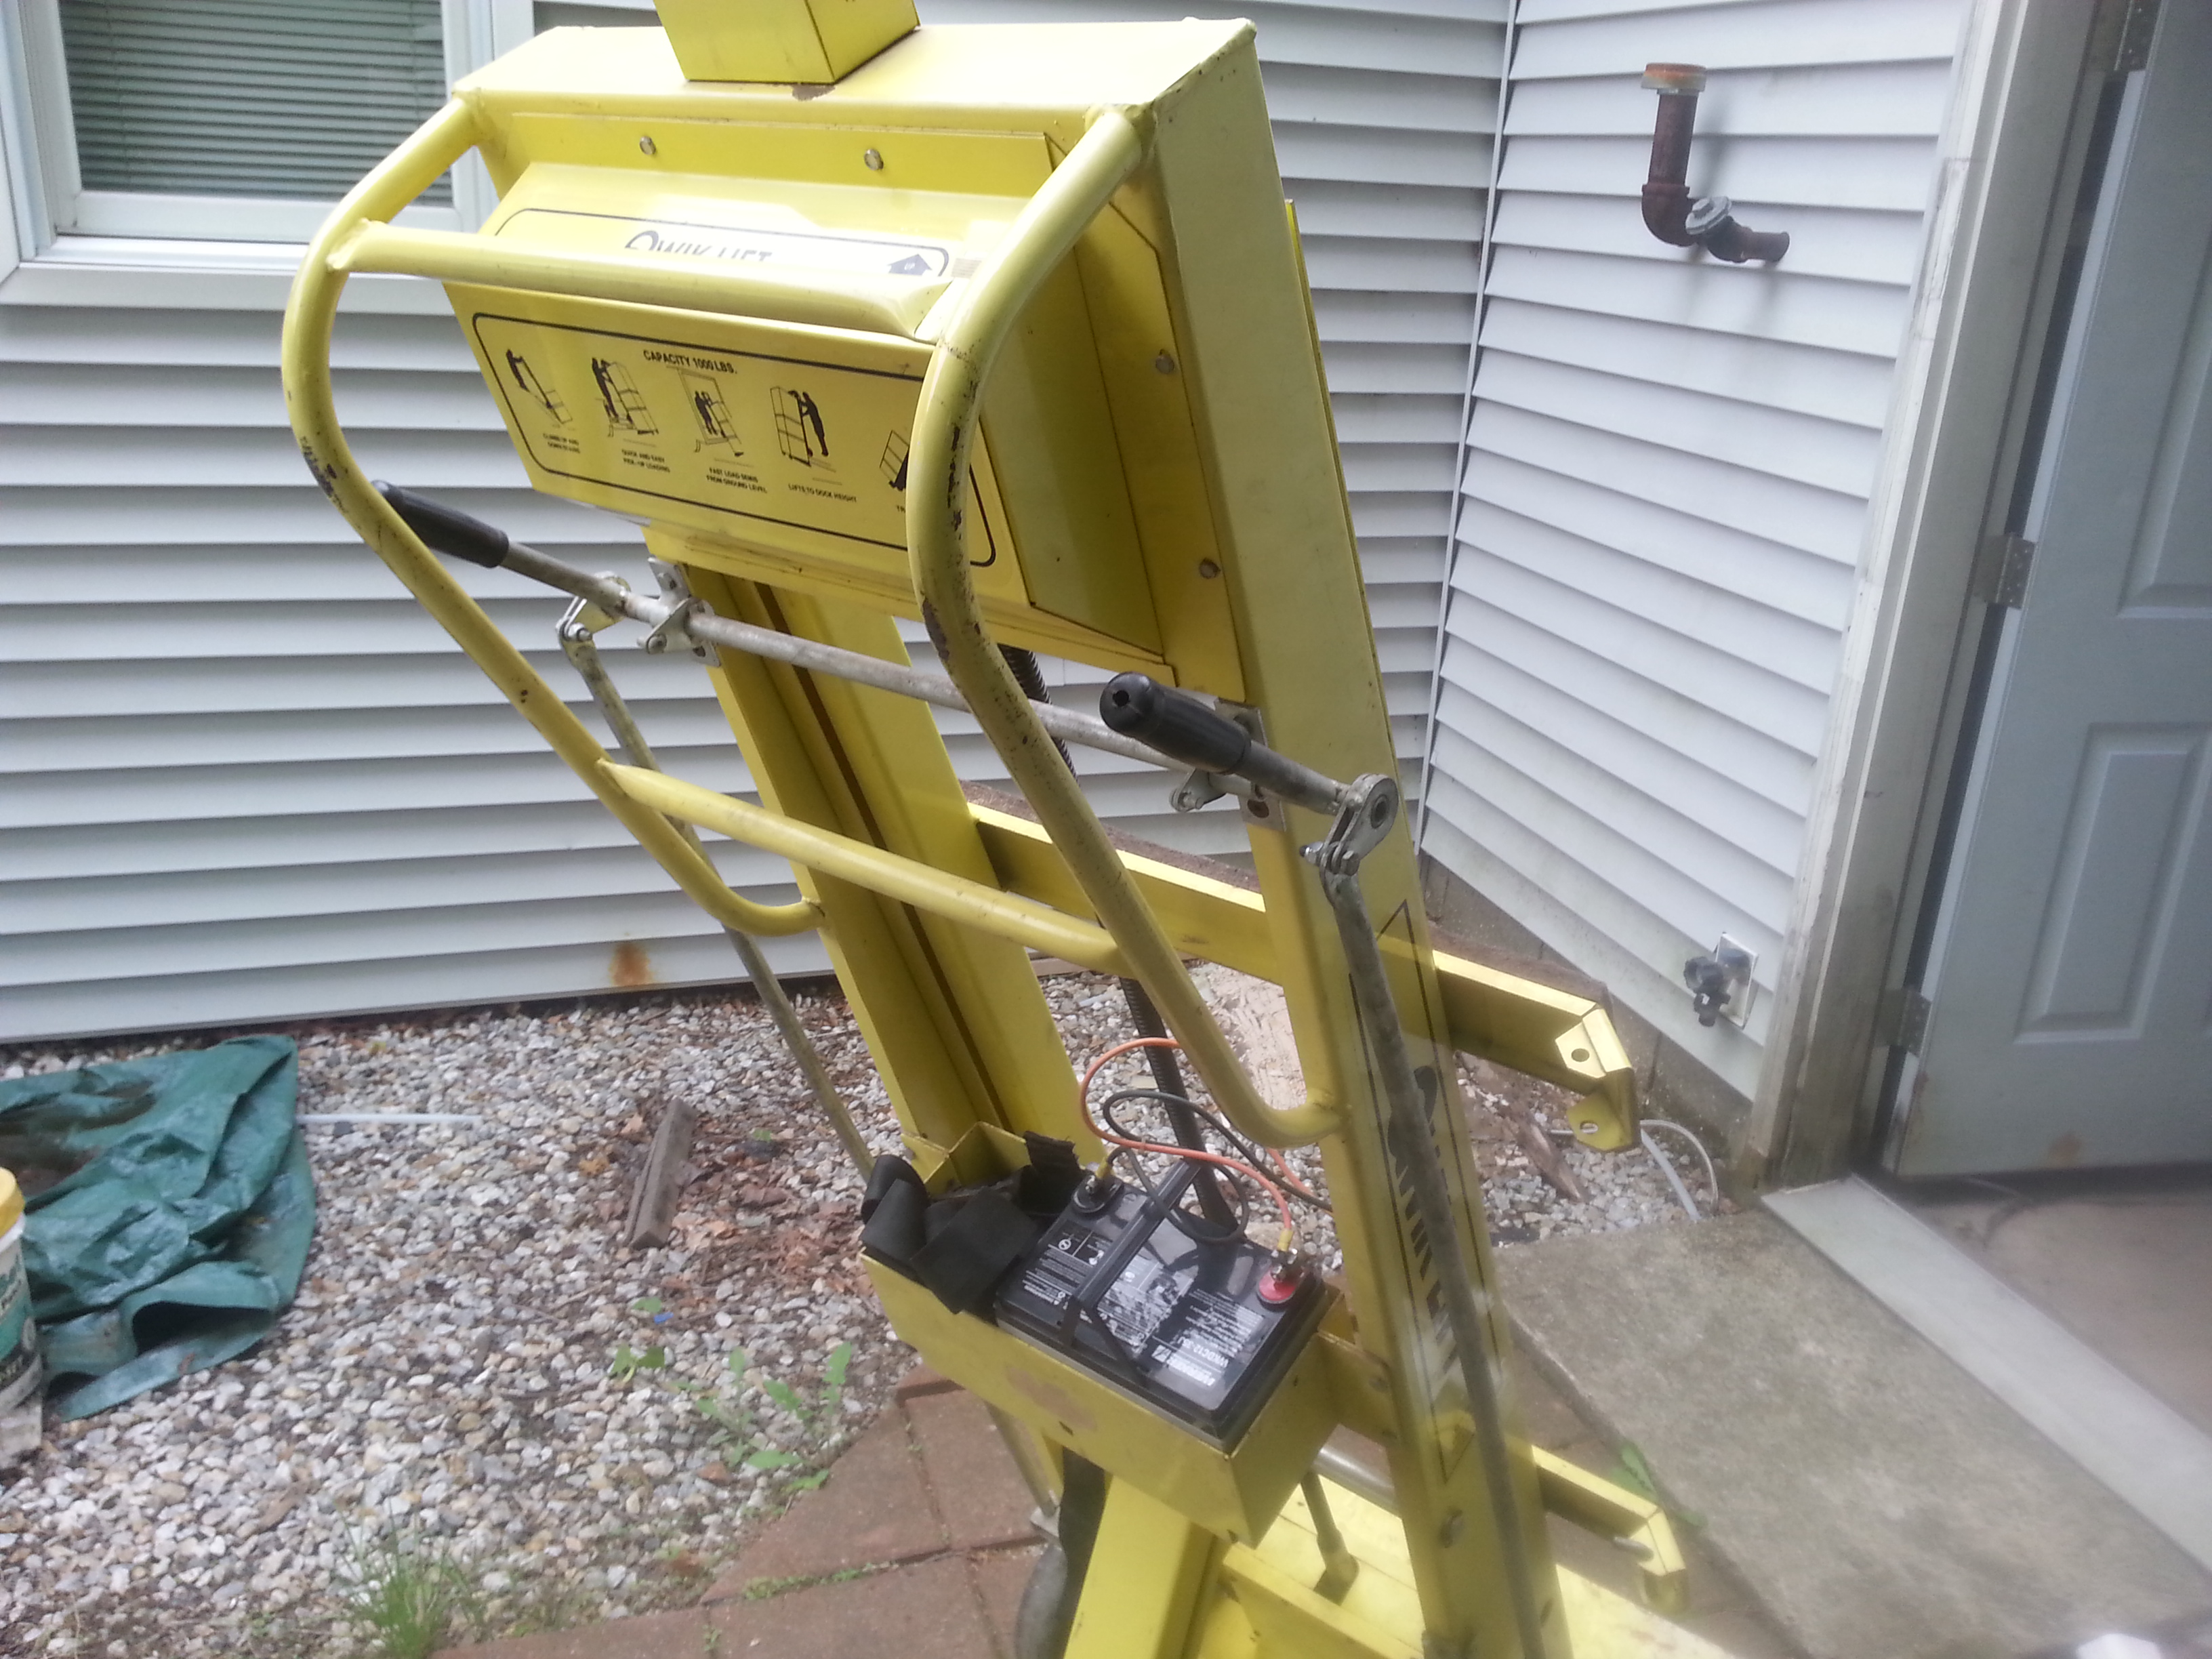 Electric stair climbing dolly heating help the wall for Motorized stair climbing dolly